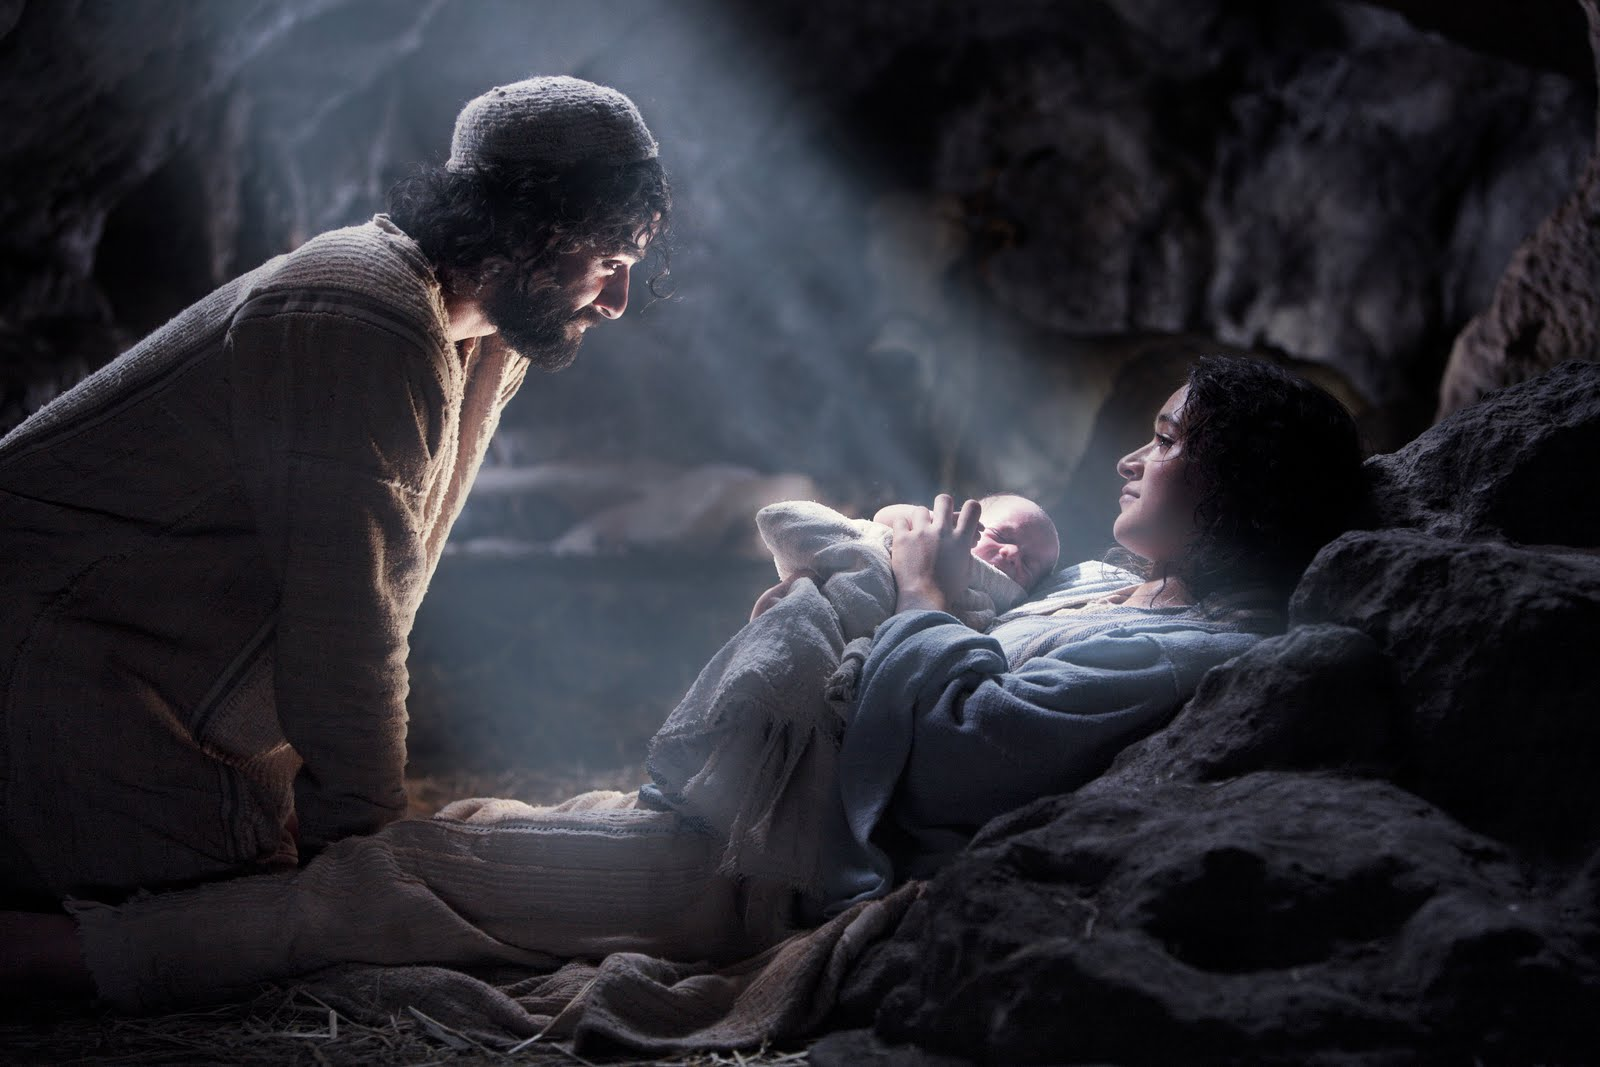 Source: The Nativity Story (film 2006)